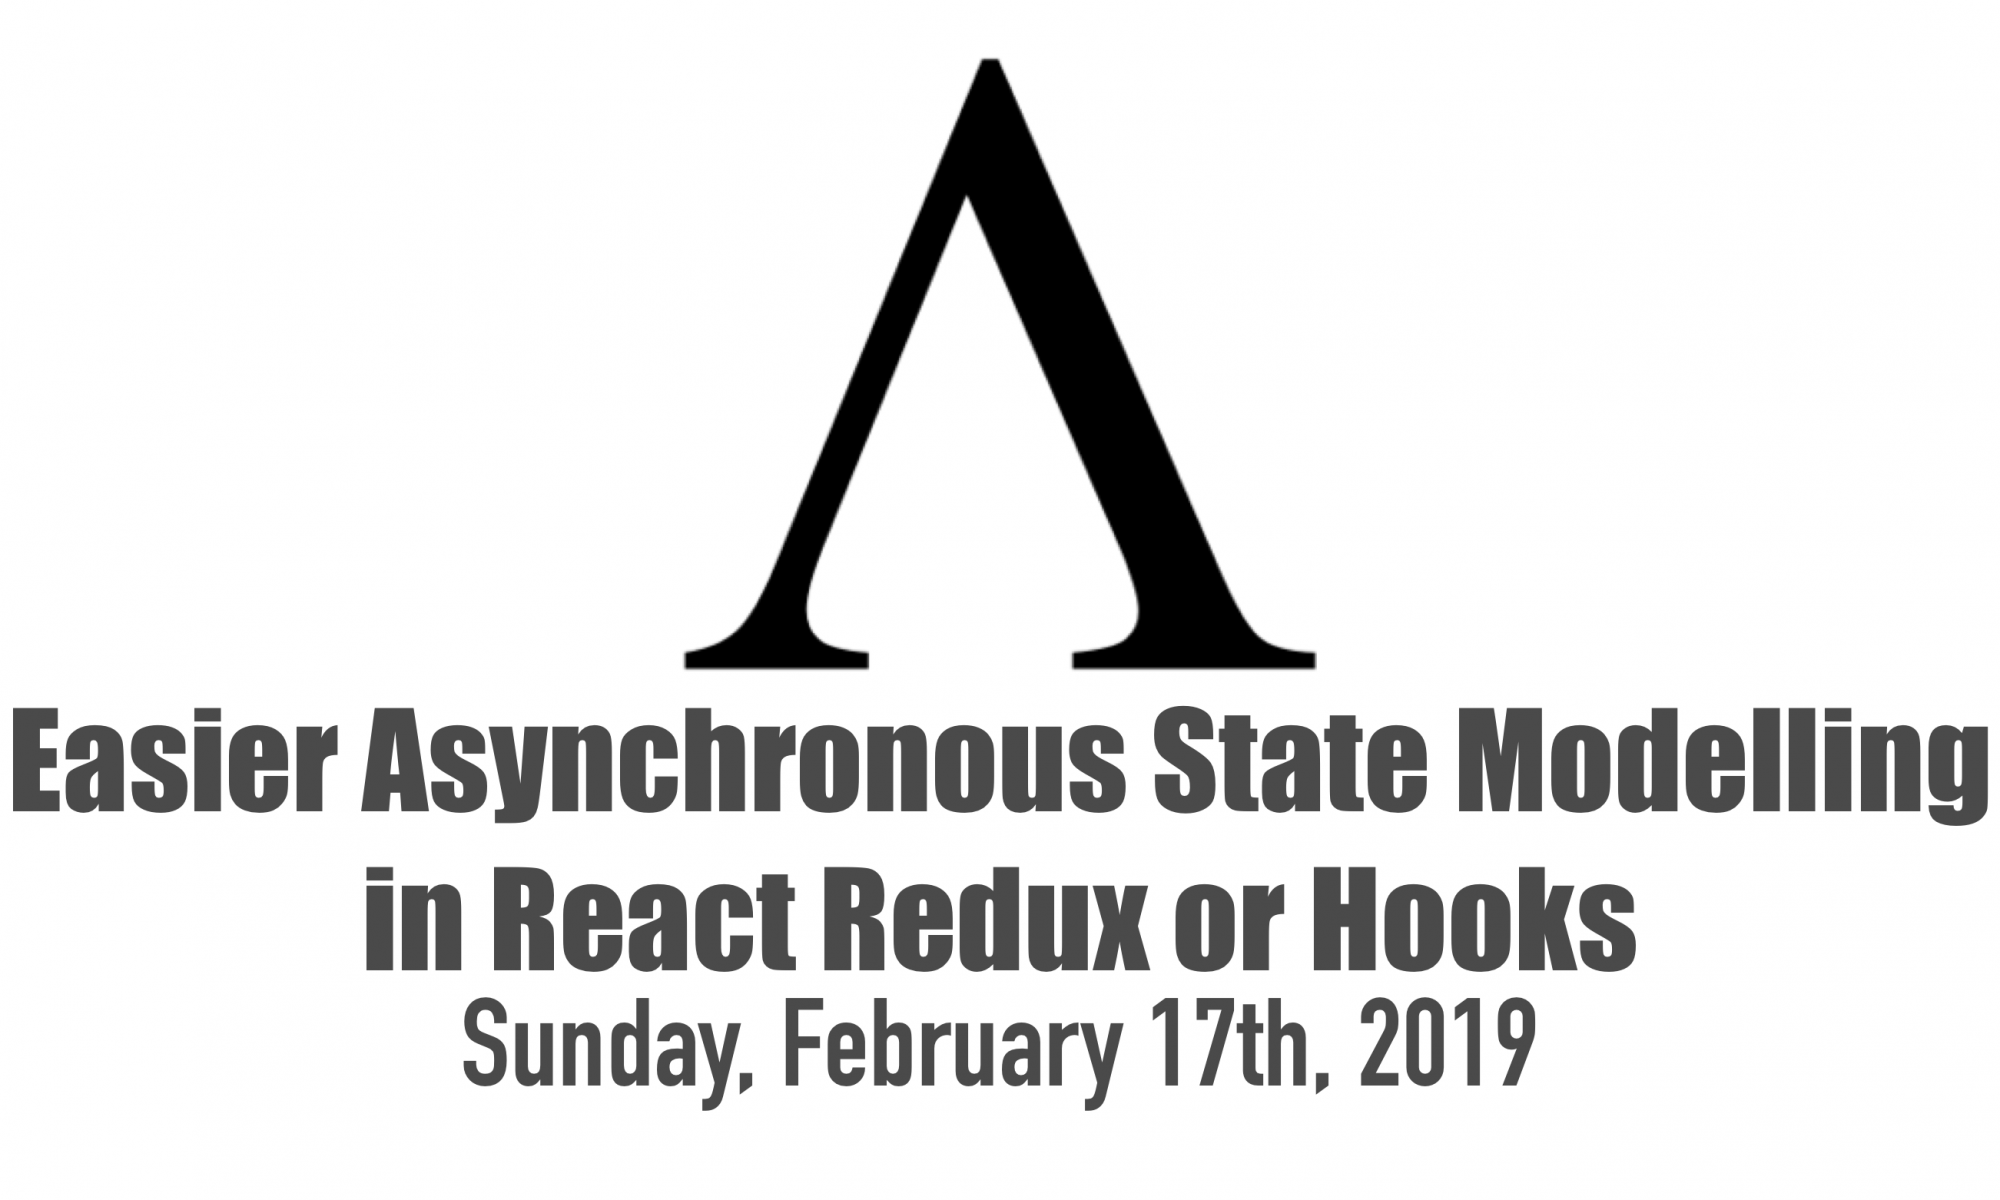 Easier Asynchronous State Modelling in React Redux or Hooks